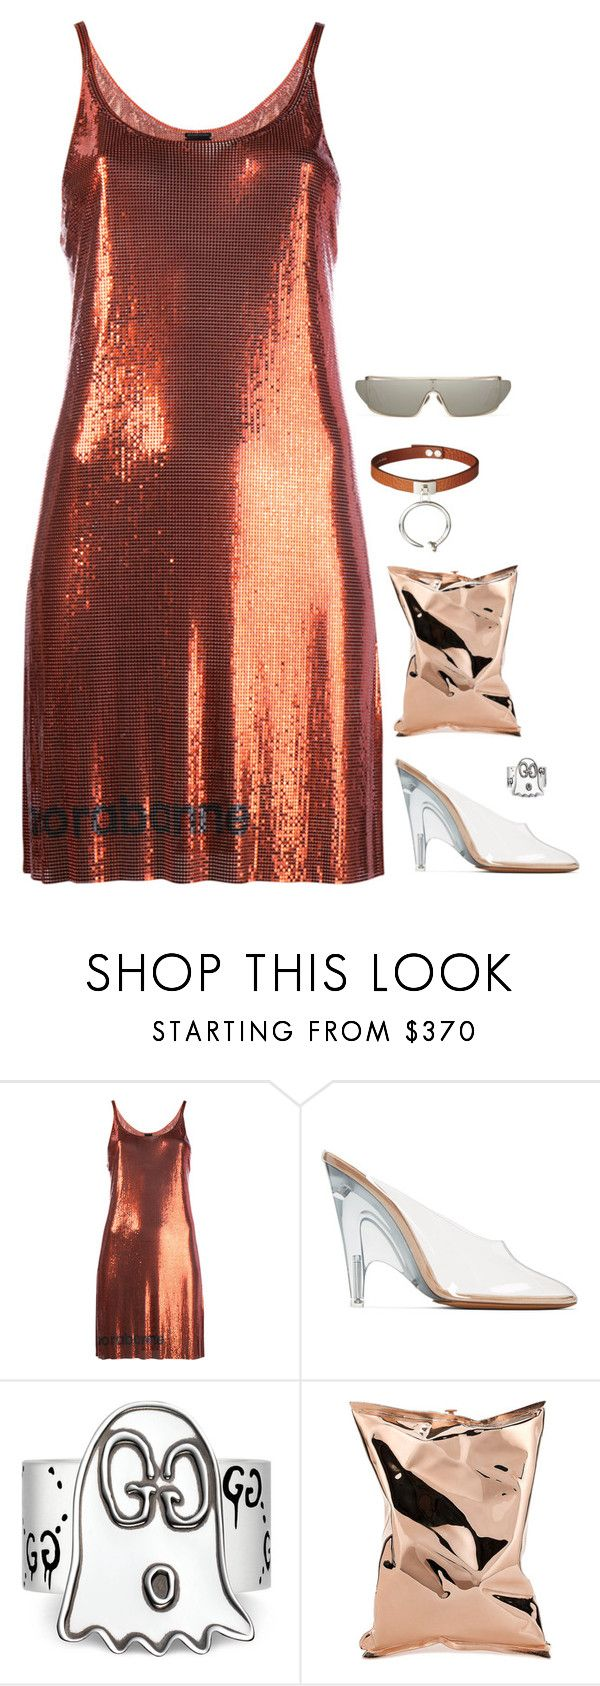 """Metalic look with paco rabanne orange dress like kim"" by hugovrcl ❤ liked on Polyvore featuring Paco Rabanne, adidas Originals, Gucci and Anya Hindmarch"